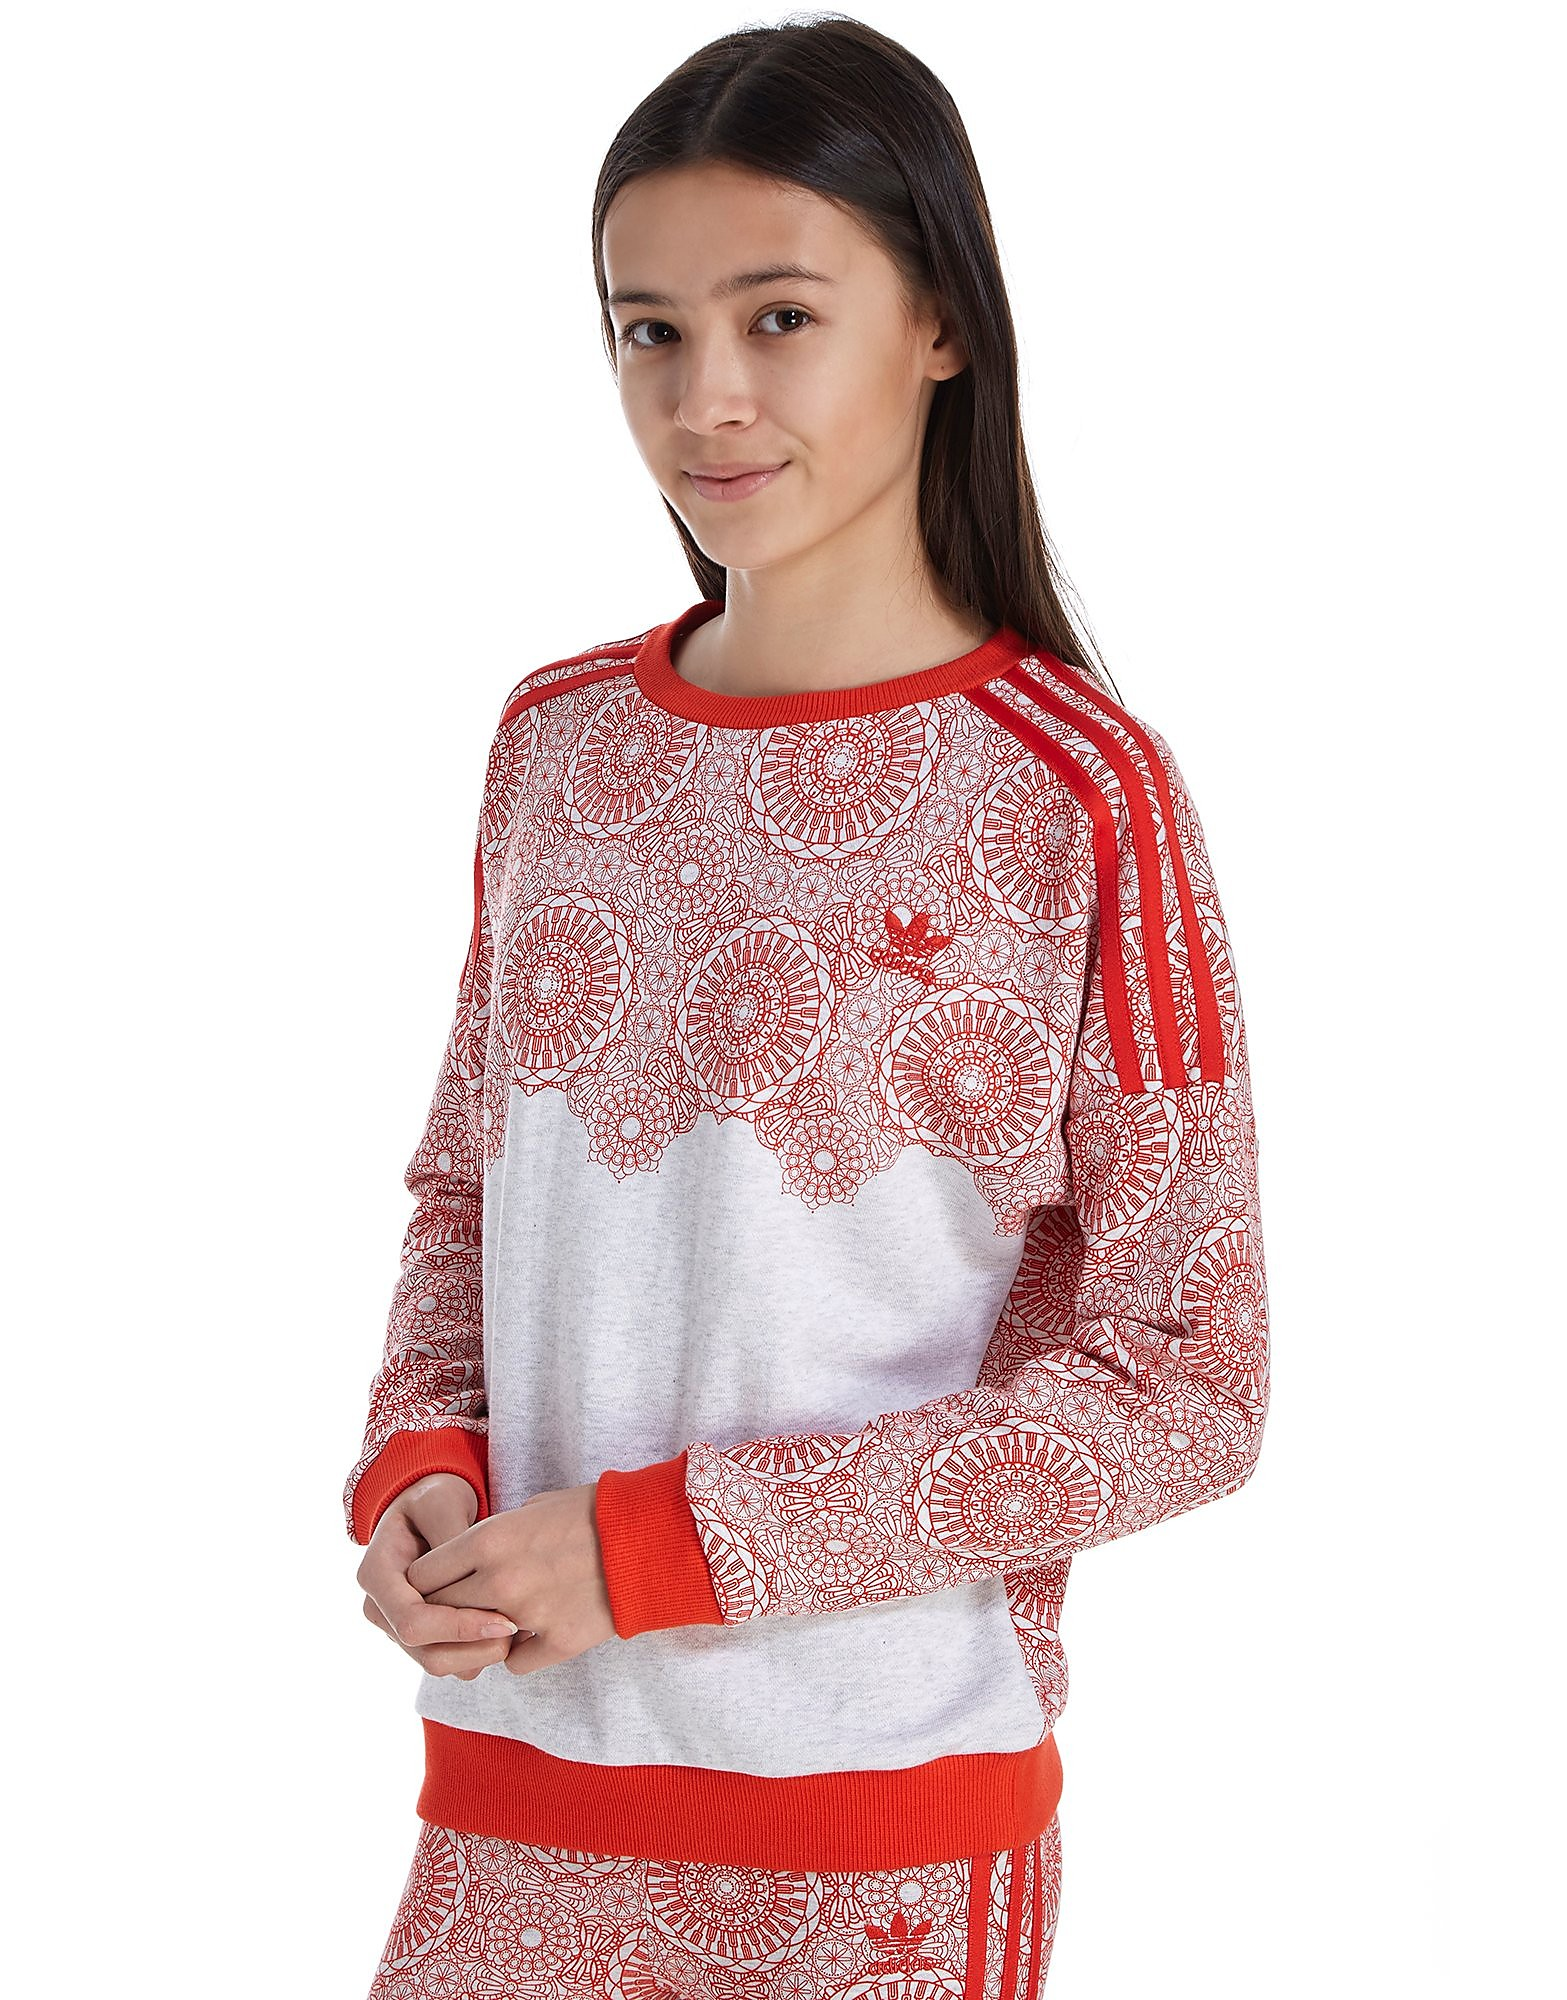 adidas Originals Girls' London Sweatshirt Junior